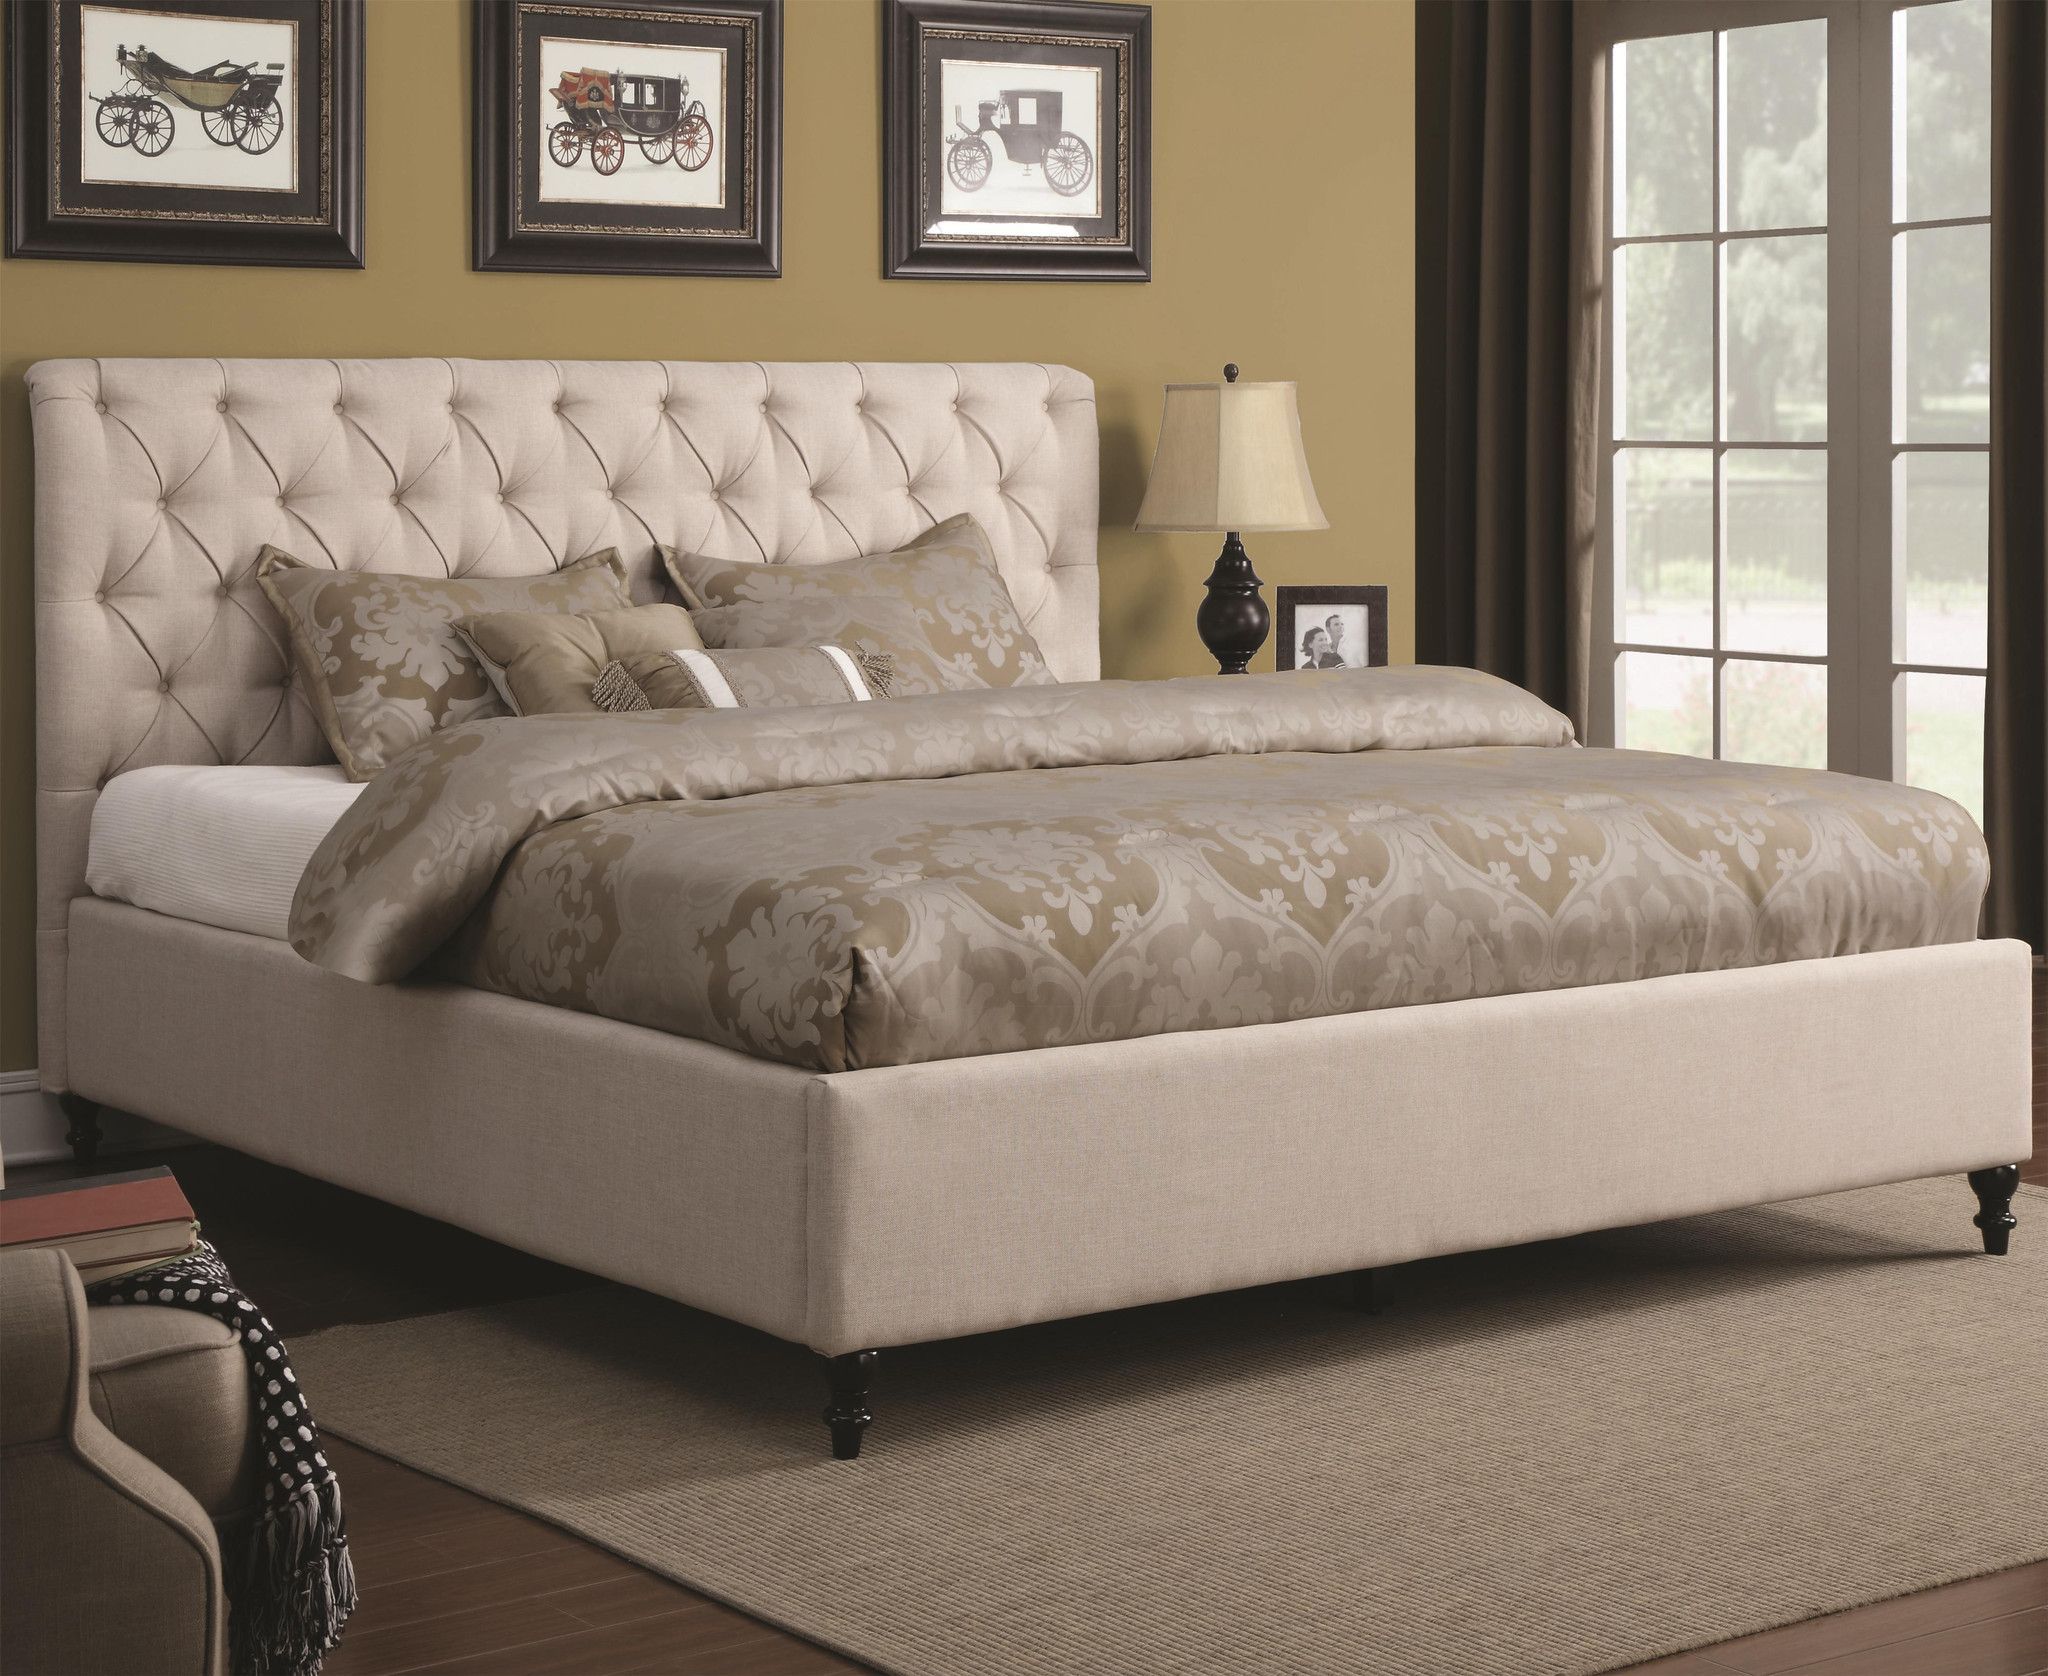 Upholstered Beds Upholstered Bed with Tufted Headboard and